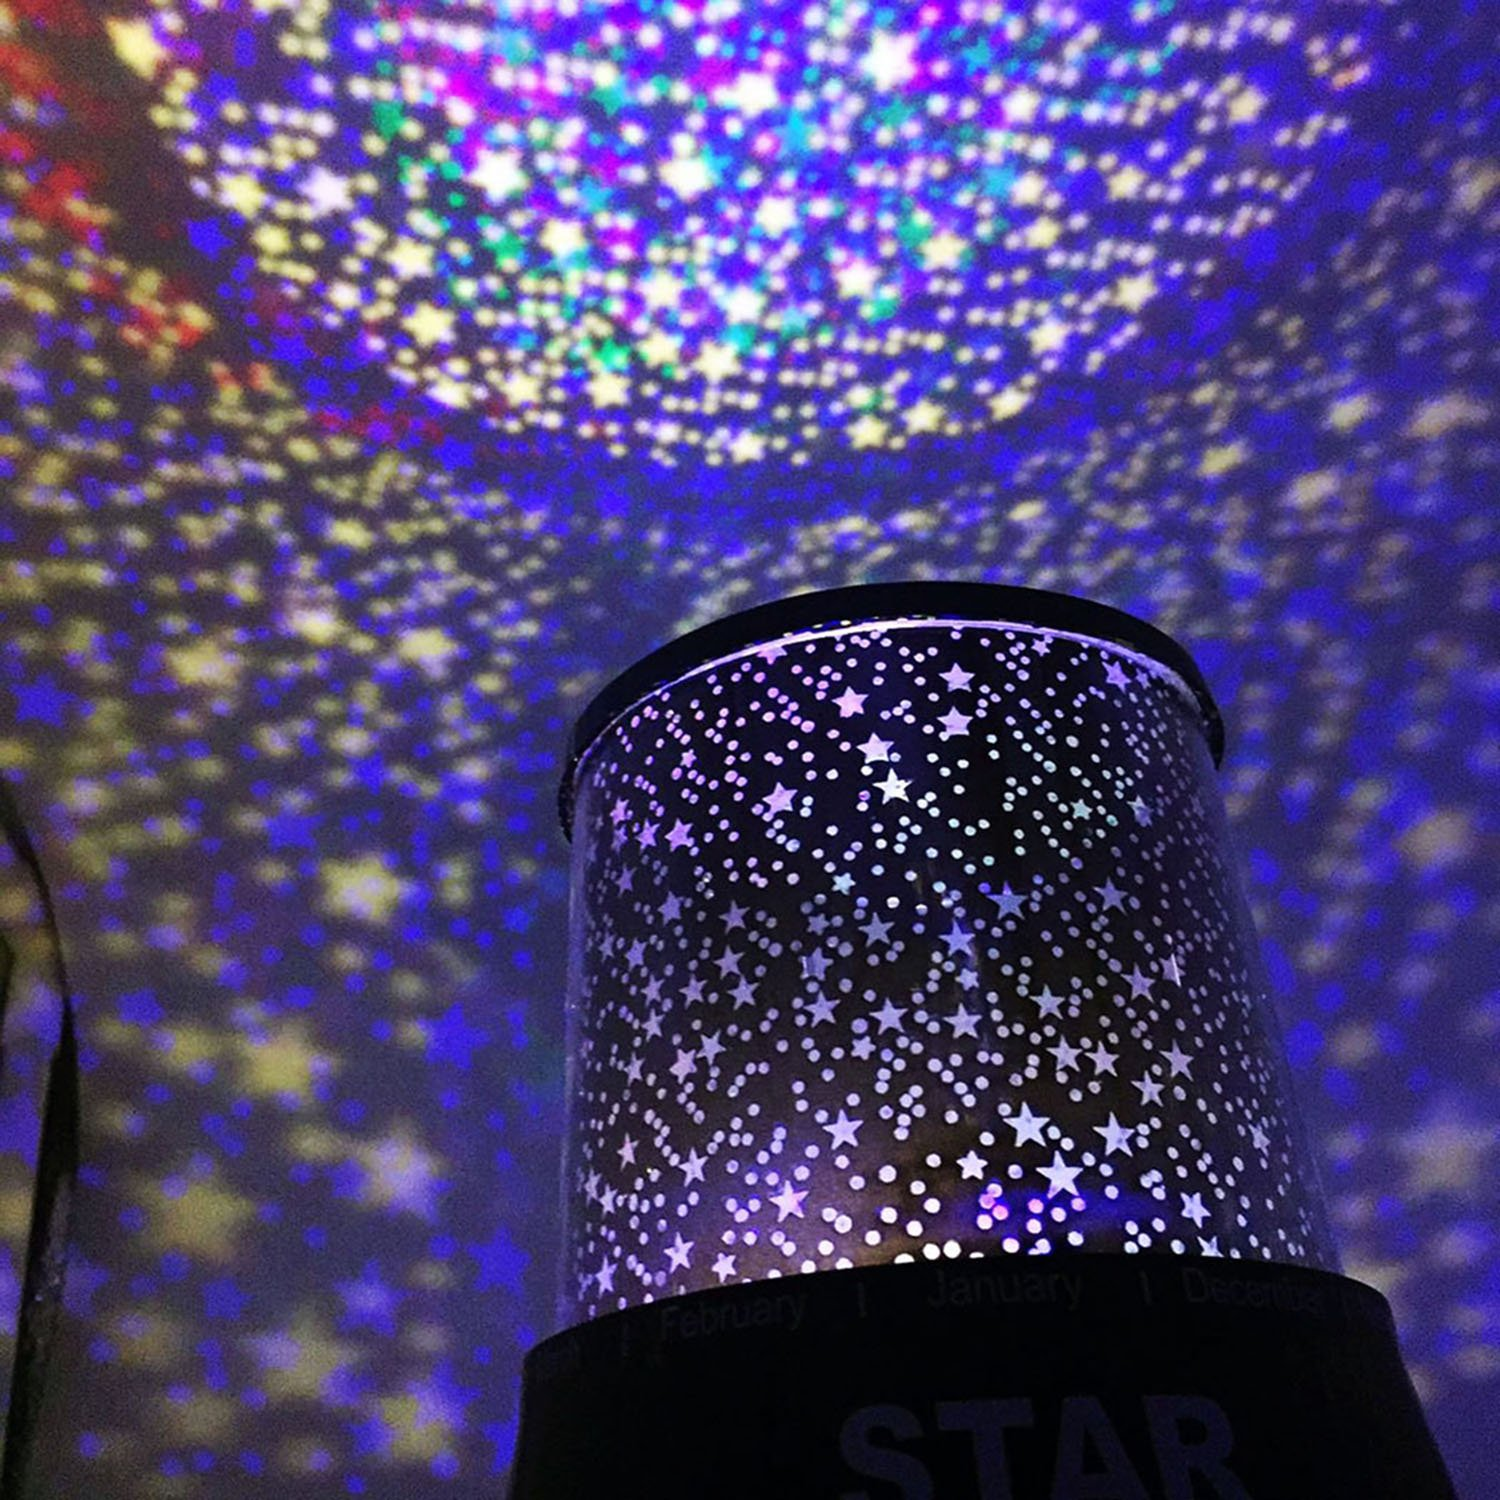 LED Star Night Light Projector for Kids, Children's Night Lamp, Baby Kids Sleep Projector Rotation Colorful Light Lamp, Unique Gifts for Children (Black)